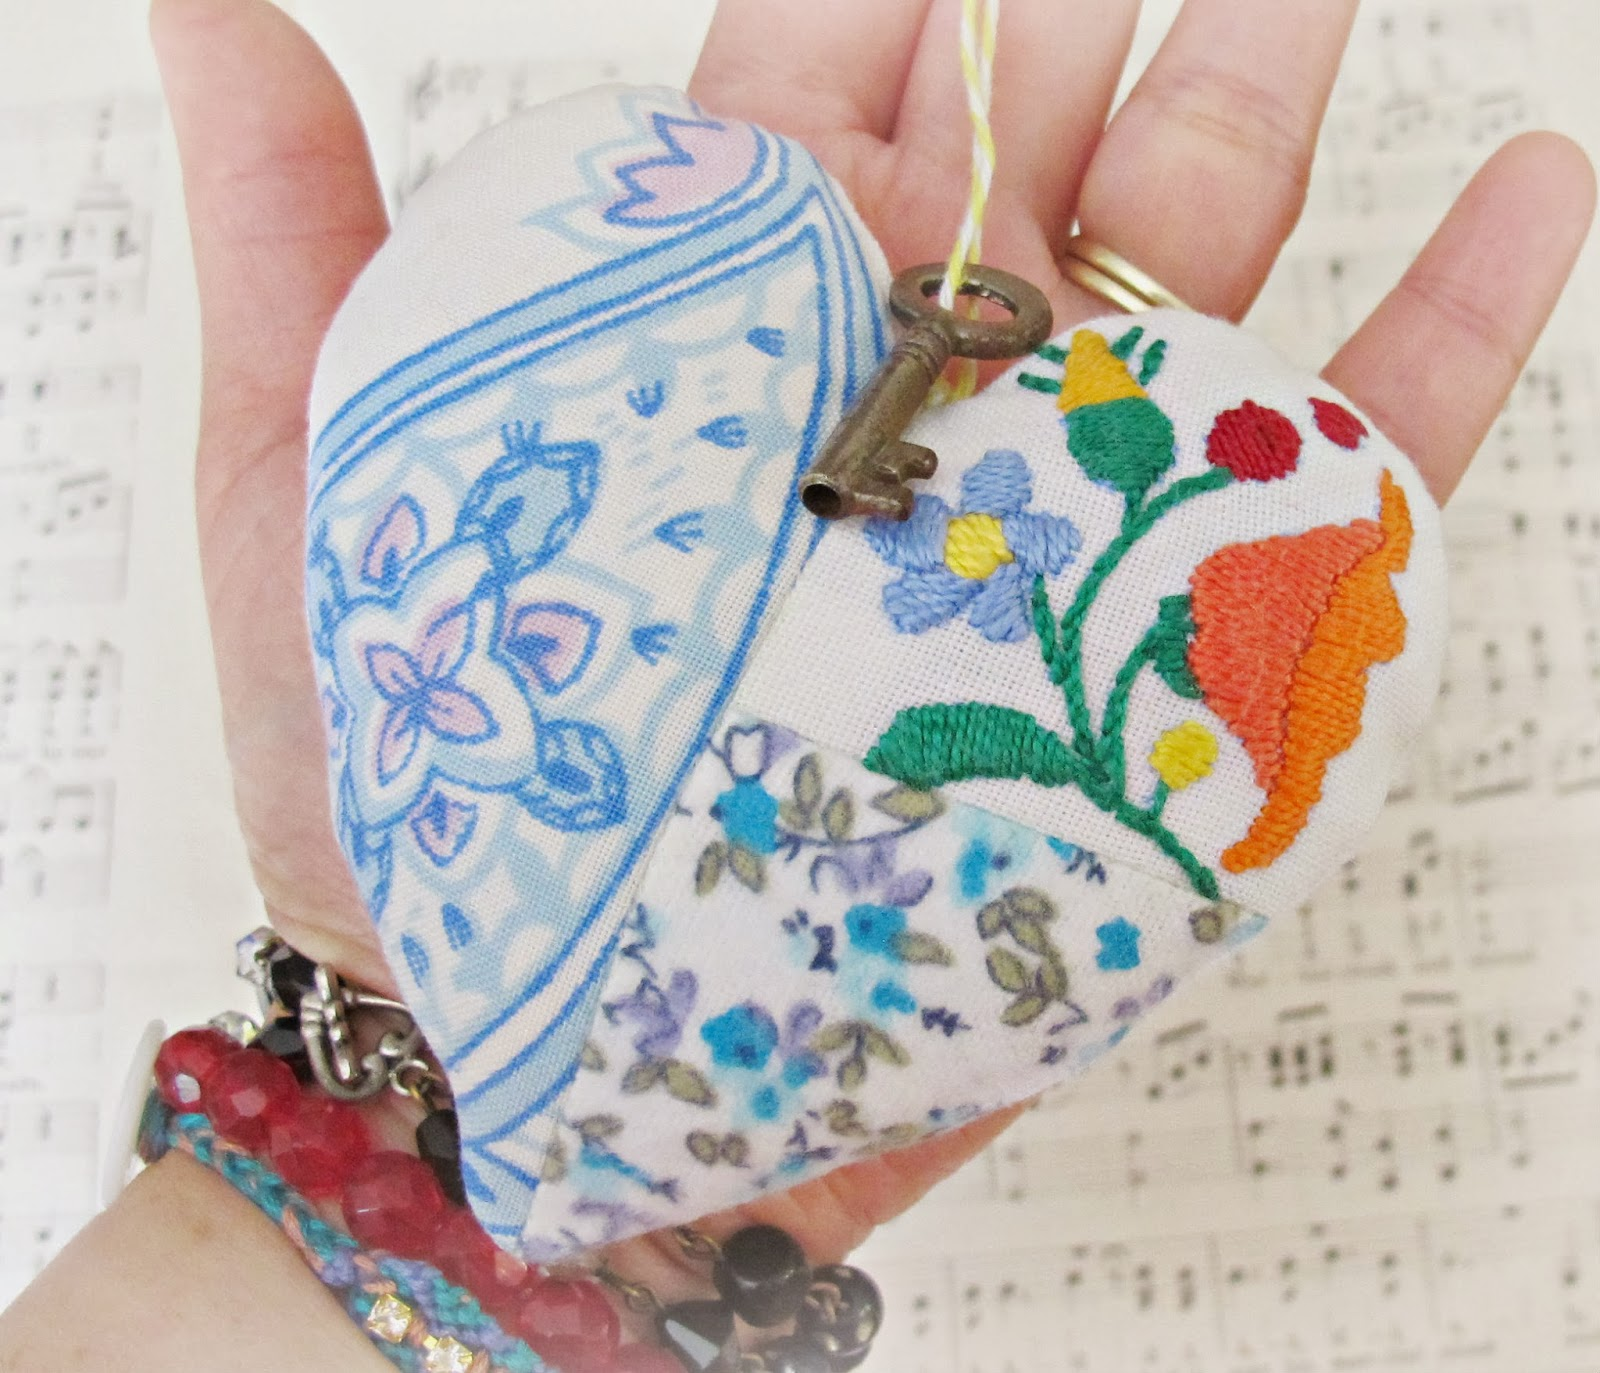 image key to my heart patchwork vintage embroidery blue paisley white skeleton key domum vindemia ornament pin cushion